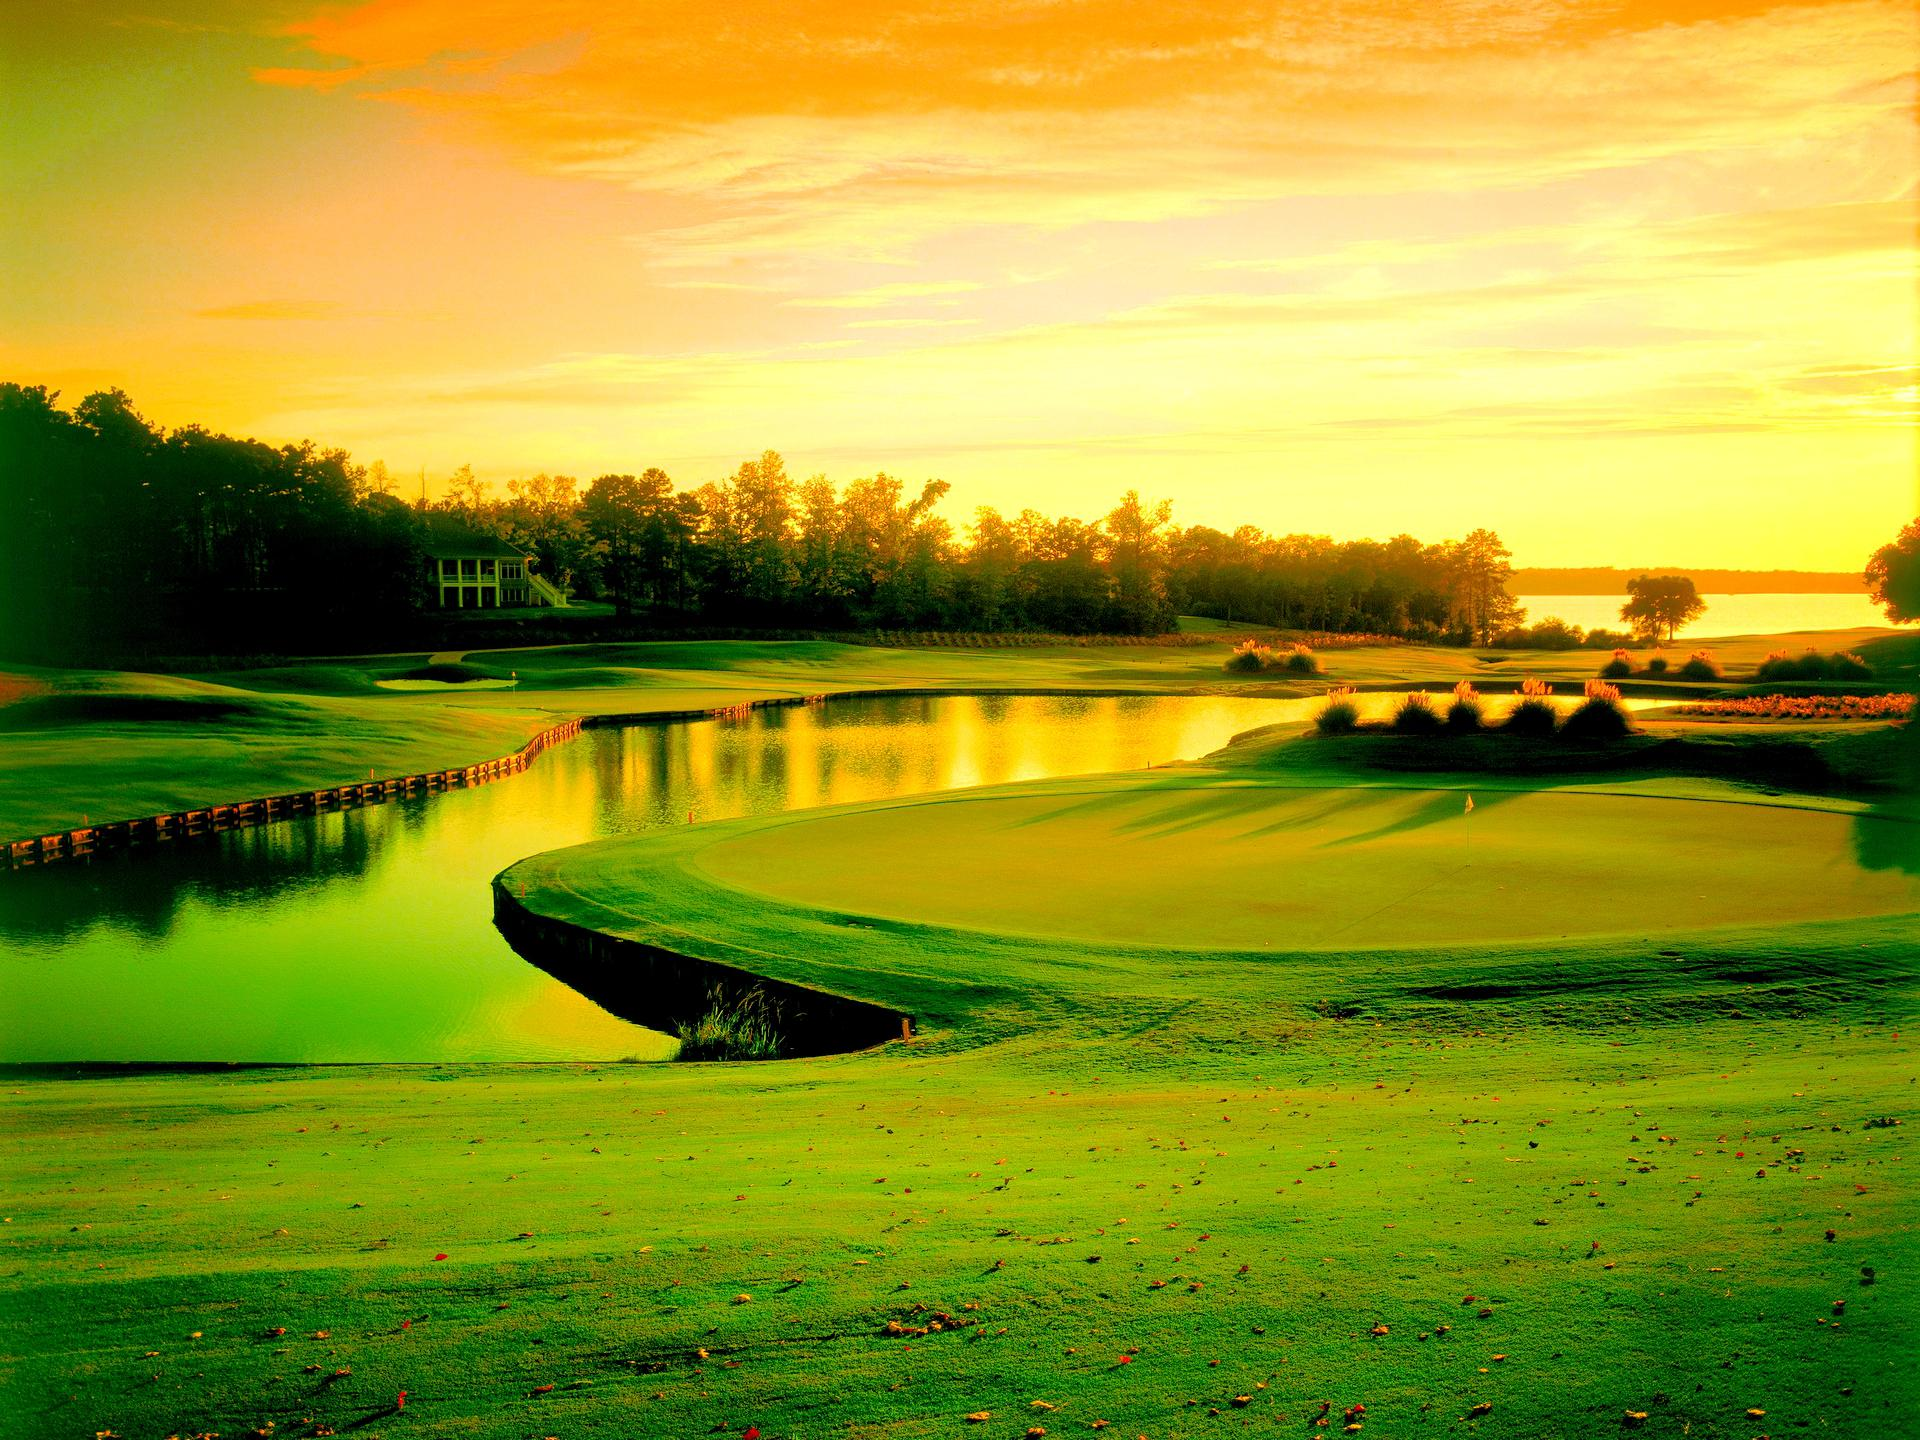 Golf Course Wallpapers Widescreen 2089654 Hd Wallpaper